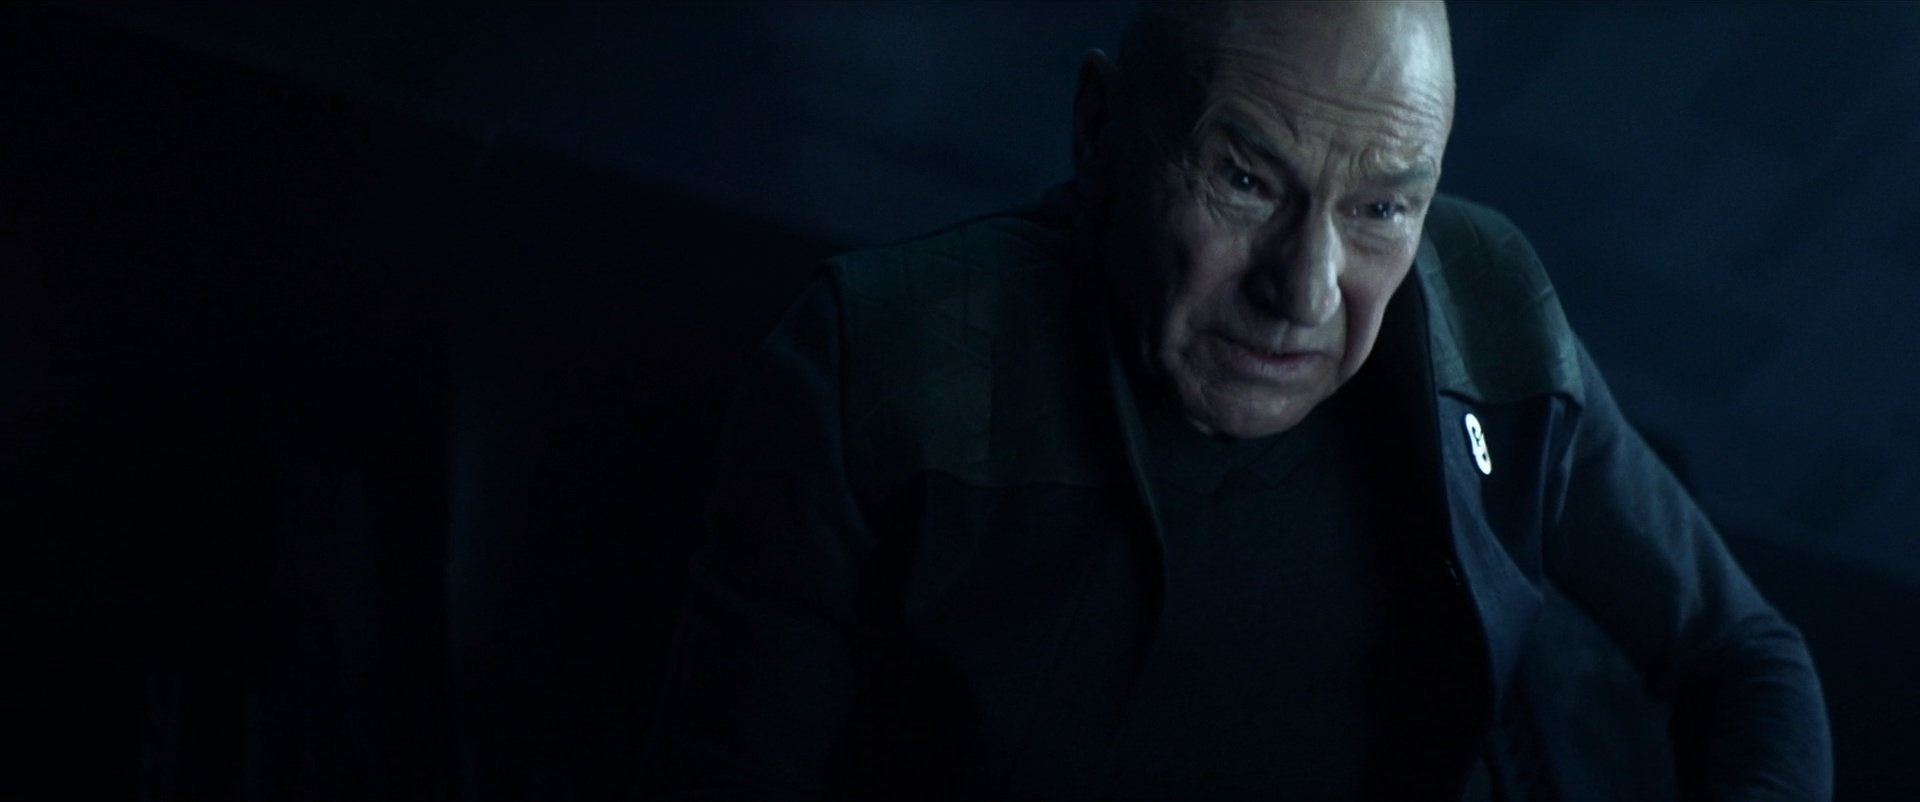 """Jean-Luc Picard struggles with his past experiences with the Borg, triggered by his visit to the derelict Borg ship, in Star Trek: Picard """"The Impossible Box"""""""